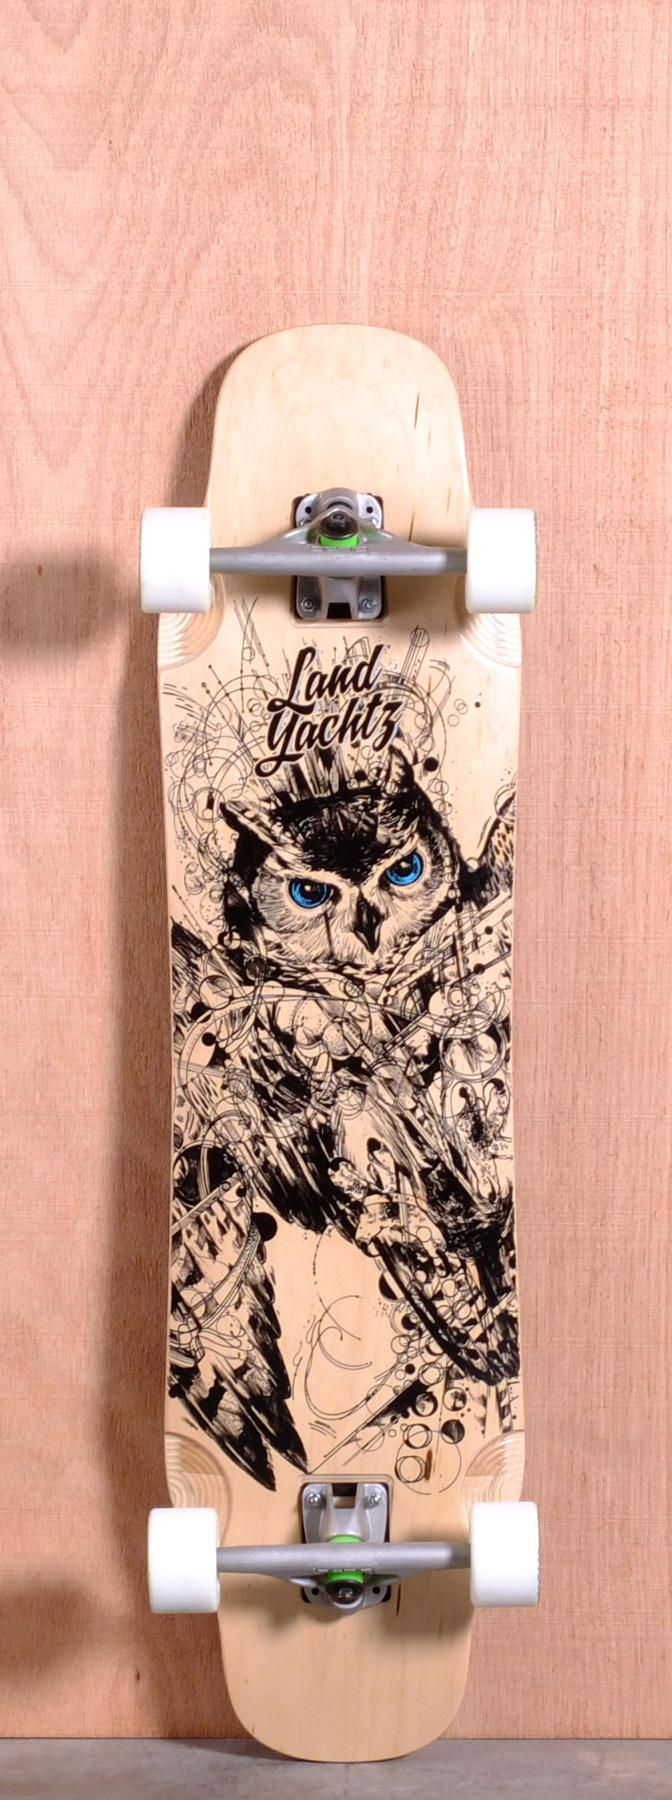 """The Landyachtz Tomahawk Longboard Complete is designed for Freeride, Sliding, Downhill and Cruising. Ships fully assembled and ready to skate! Function: Freeride, Sliding, Downhill, Cruising Features: Medium W Concave, Micro Drop, Kicktail, Upturned Nose, Recessed Flush Truck Mount, Flared Wheel Wells, Multiple Wheelbase Options Material: 7 Ply Maple, Length: 38"""" Width: 10"""" Wheelbase: 22.7' - 25.5"""" Thickness: 9/16"""" Hole Pattern: Old School Grip: Black"""